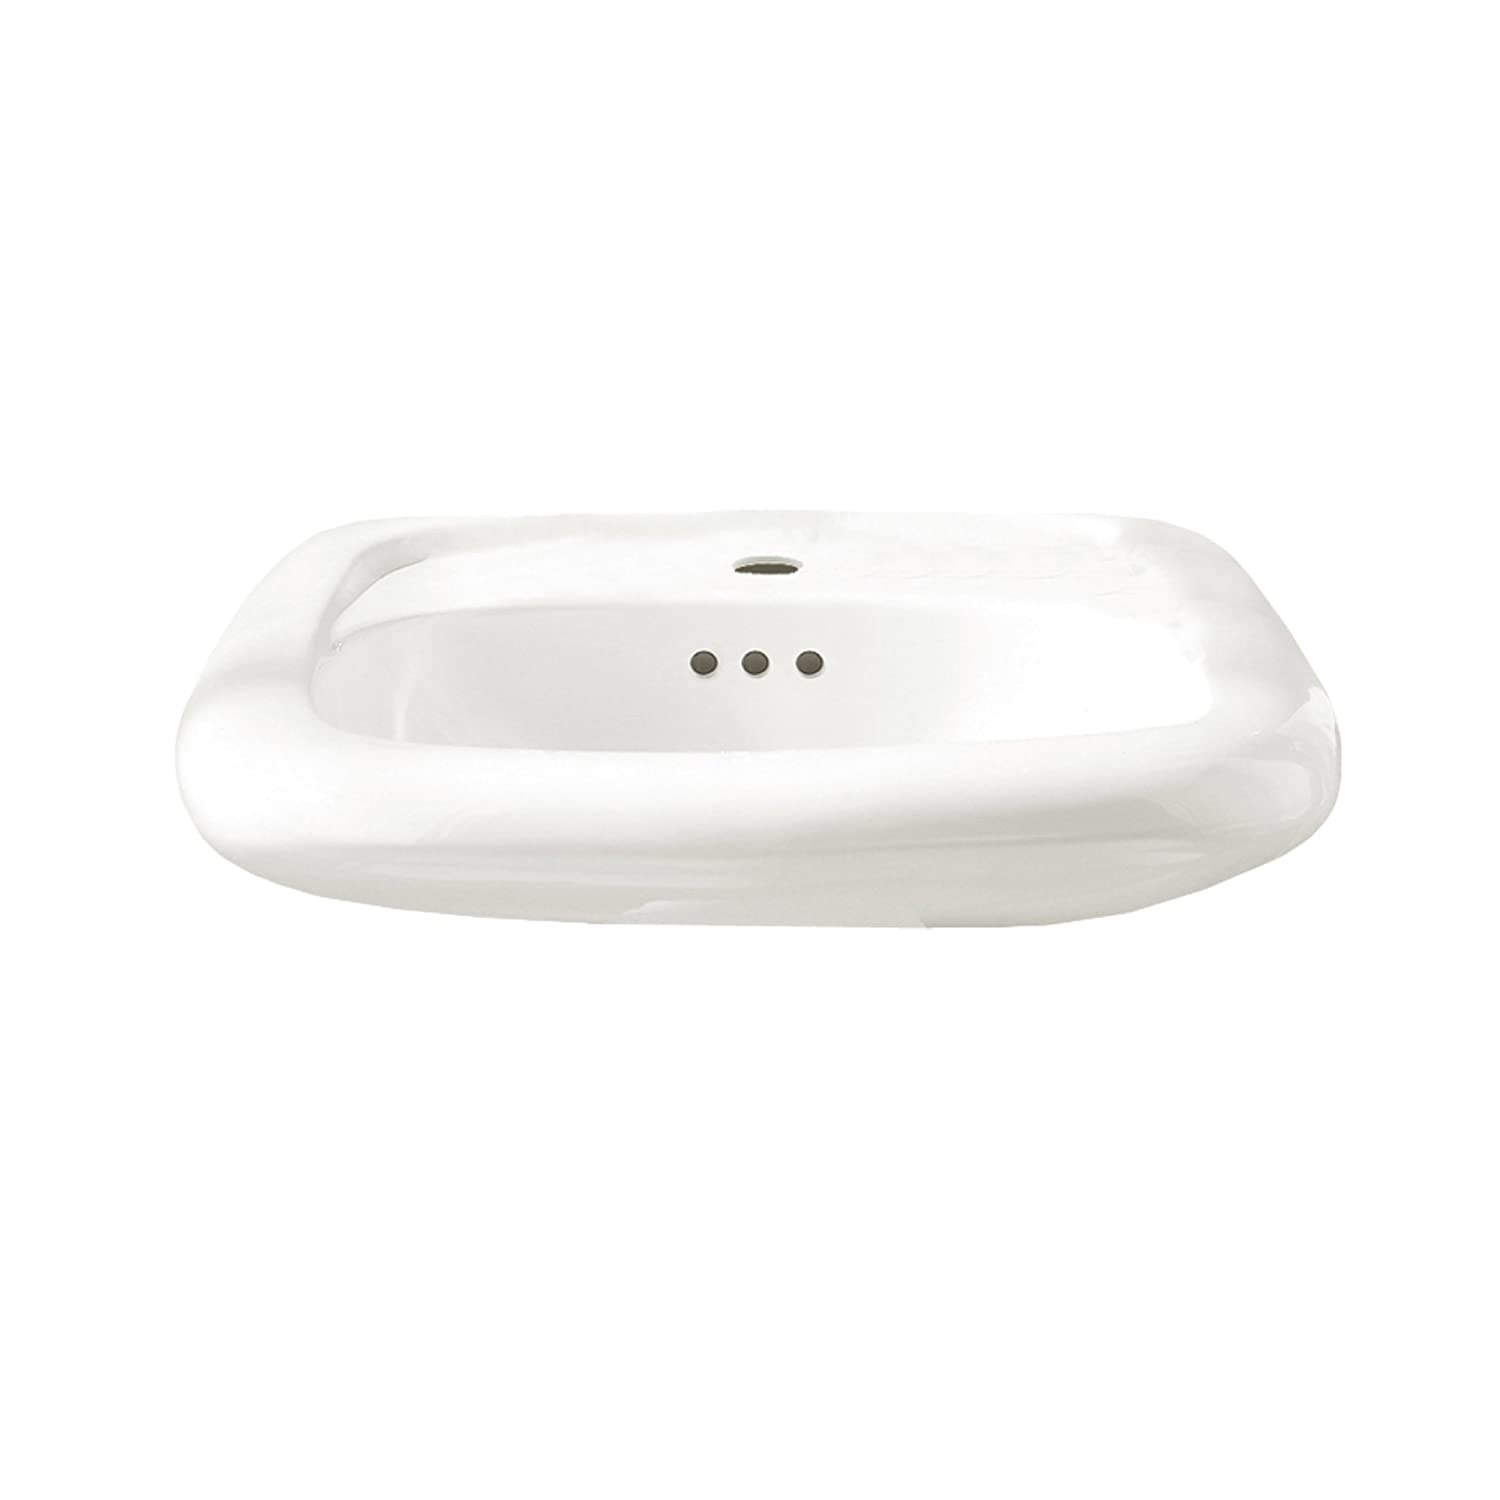 American Standard 2393202ICH.020 Princeton Americast Above-Floor Rough-In Bathtub with Right Drain and Built-In Overflow, 60 in x 30 in, White